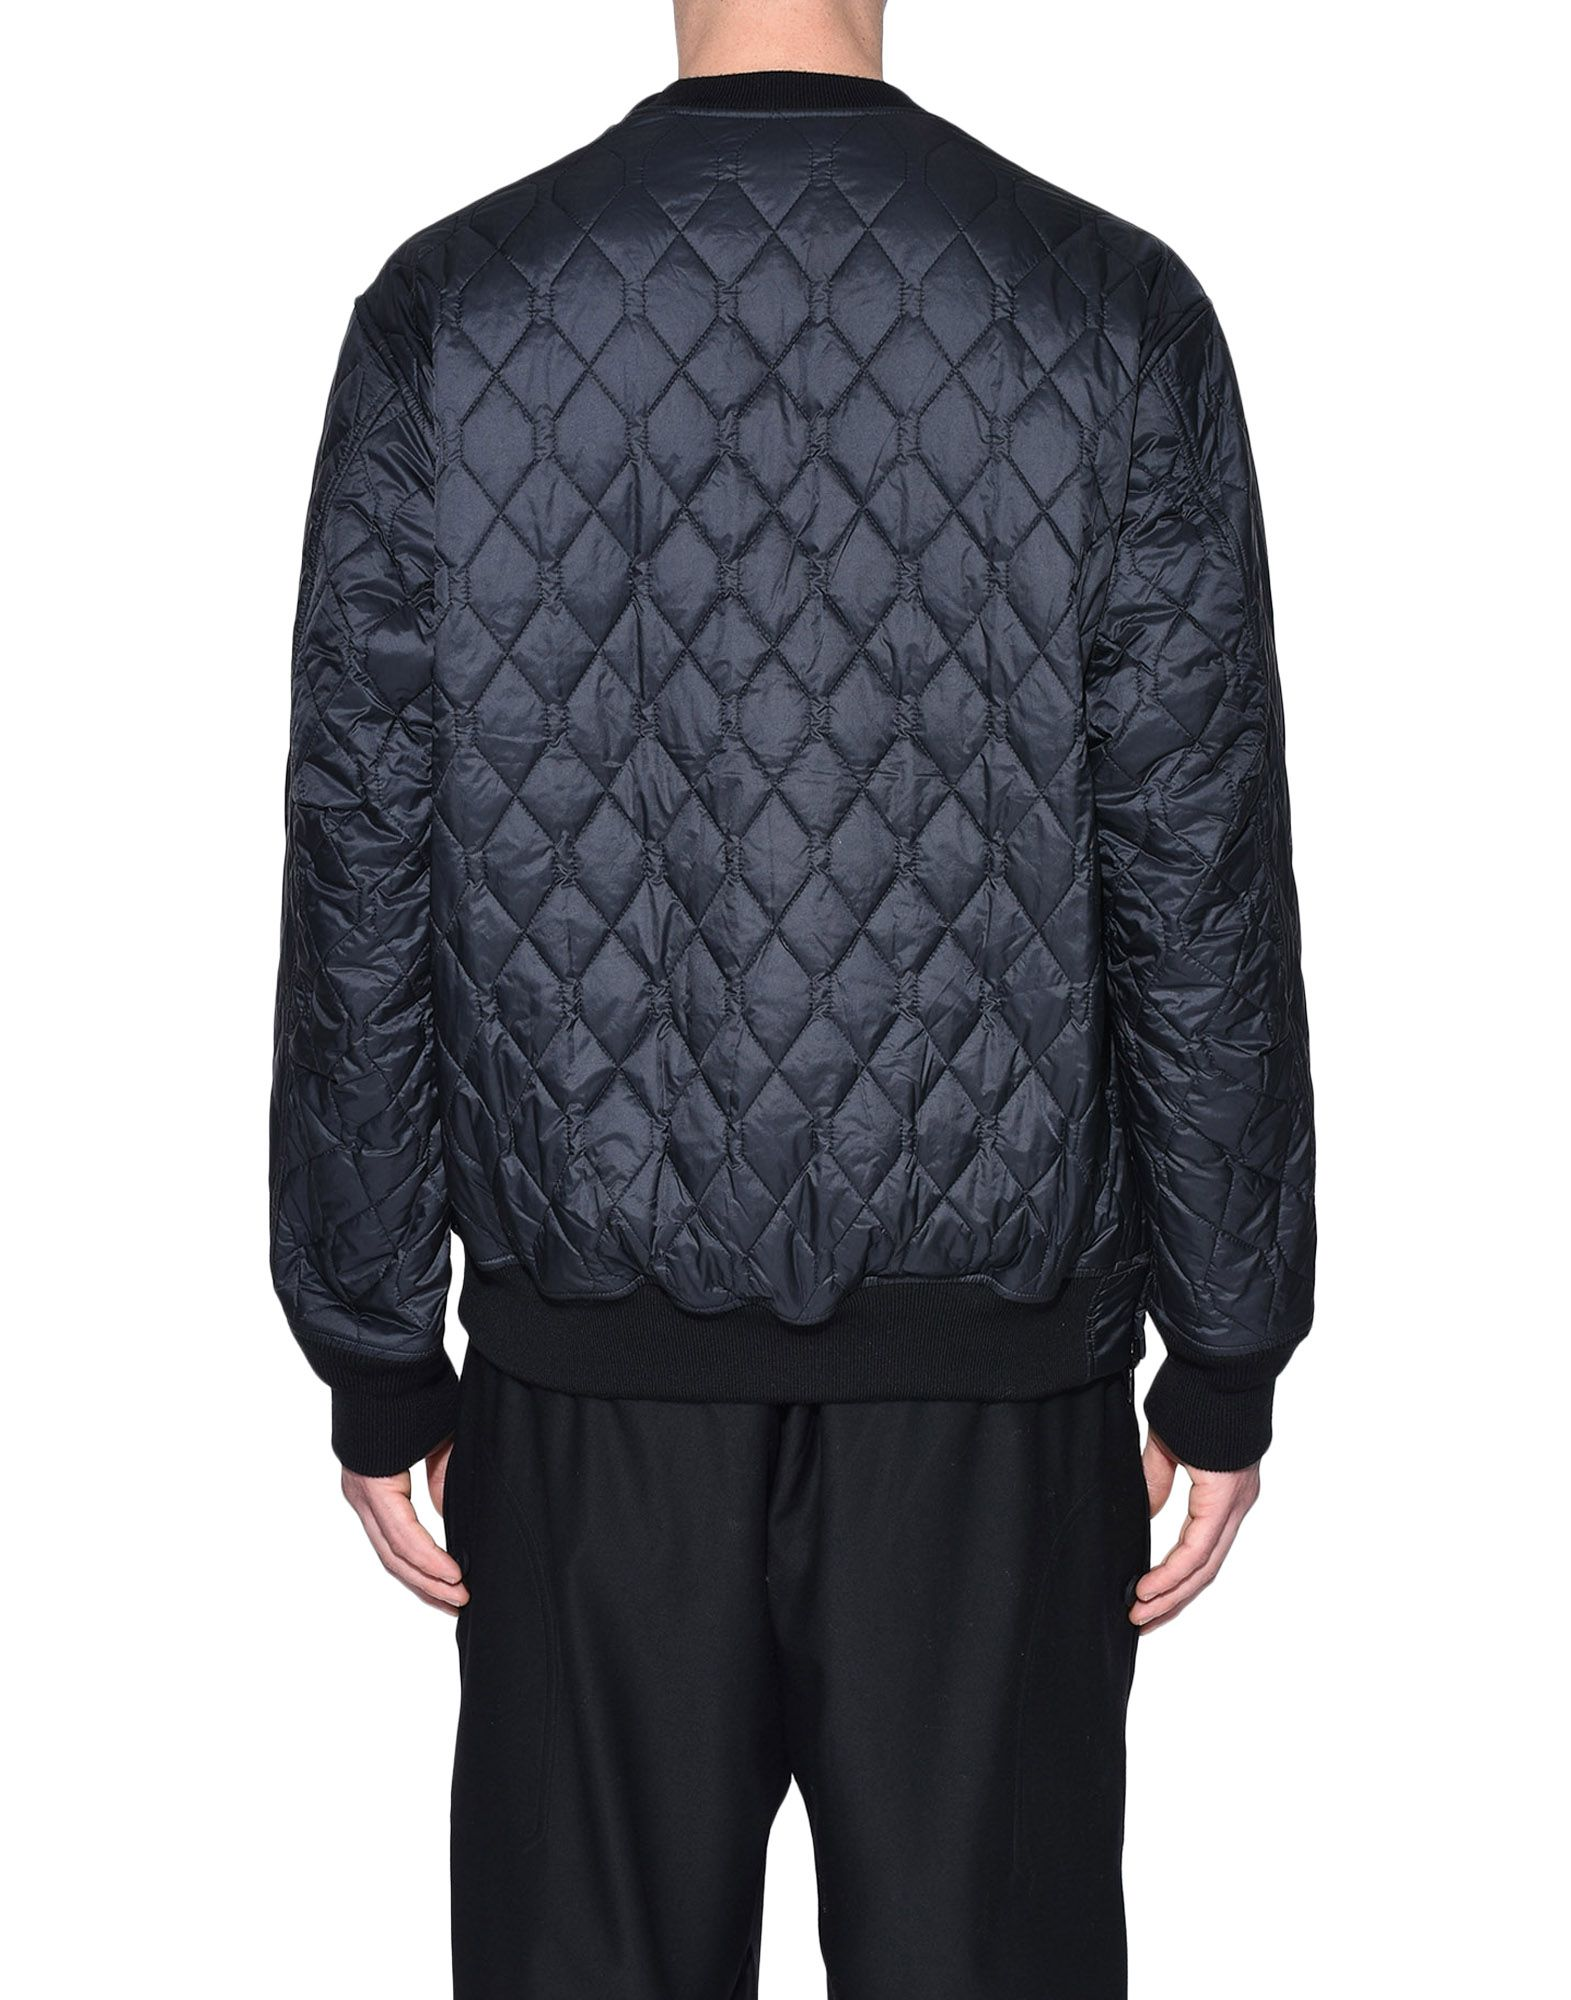 Y-3 Y-3 Quilted Sweater Sweatshirt Man d